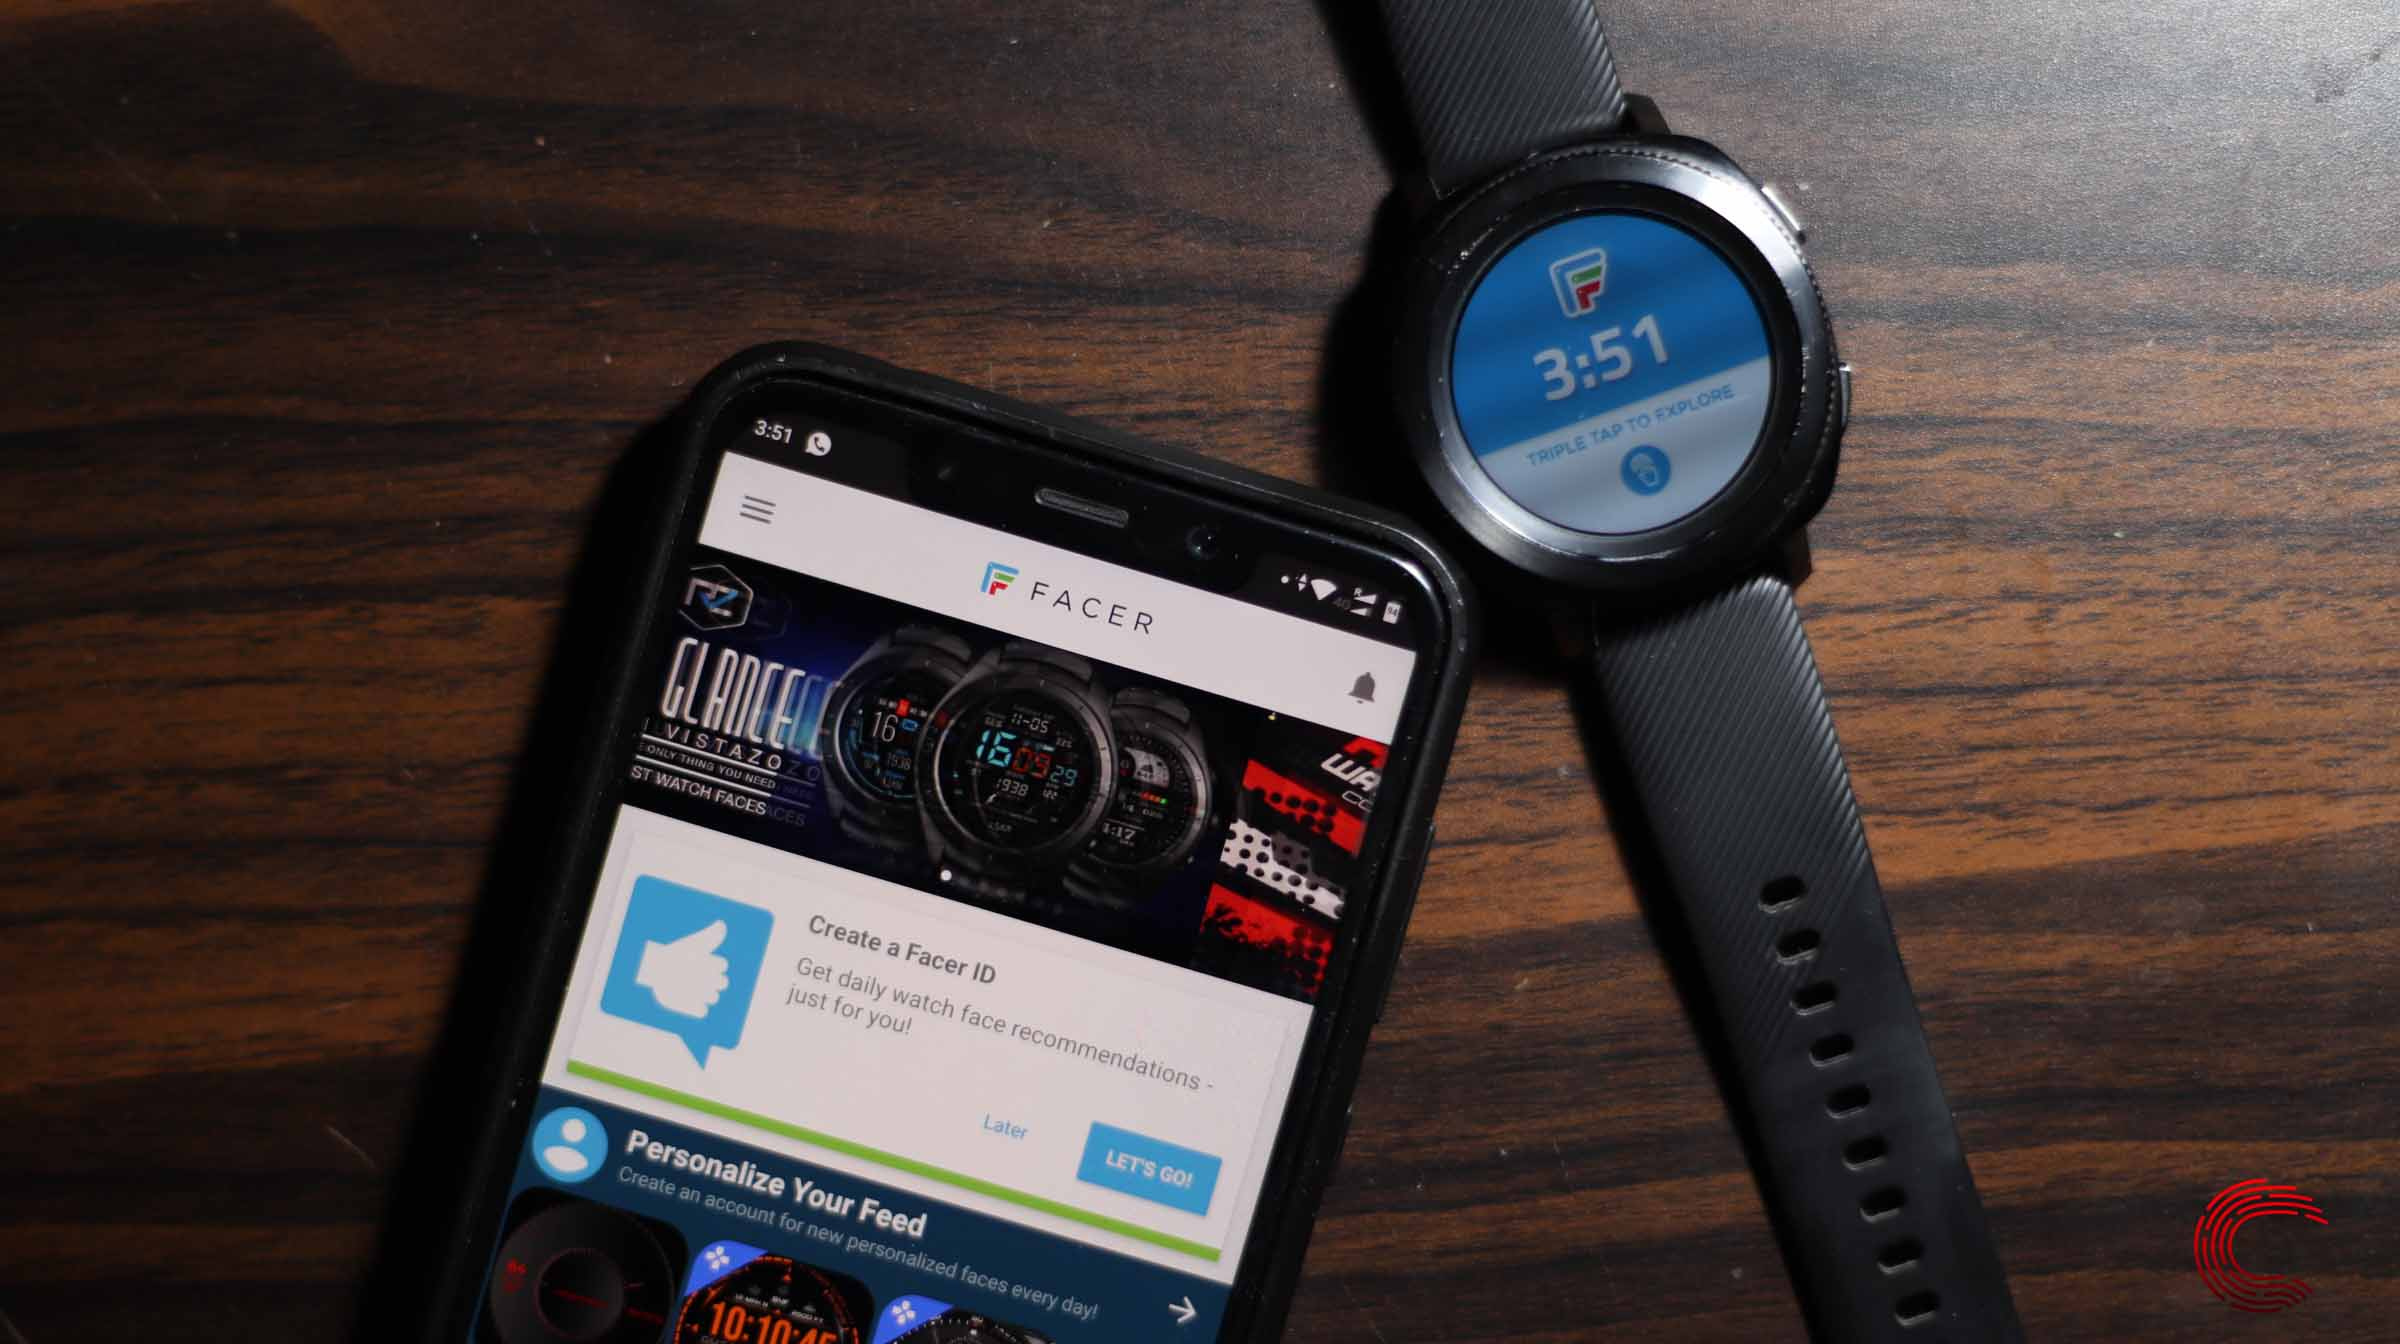 How to use third party watch faces on Galaxy Watch Active or Gear?